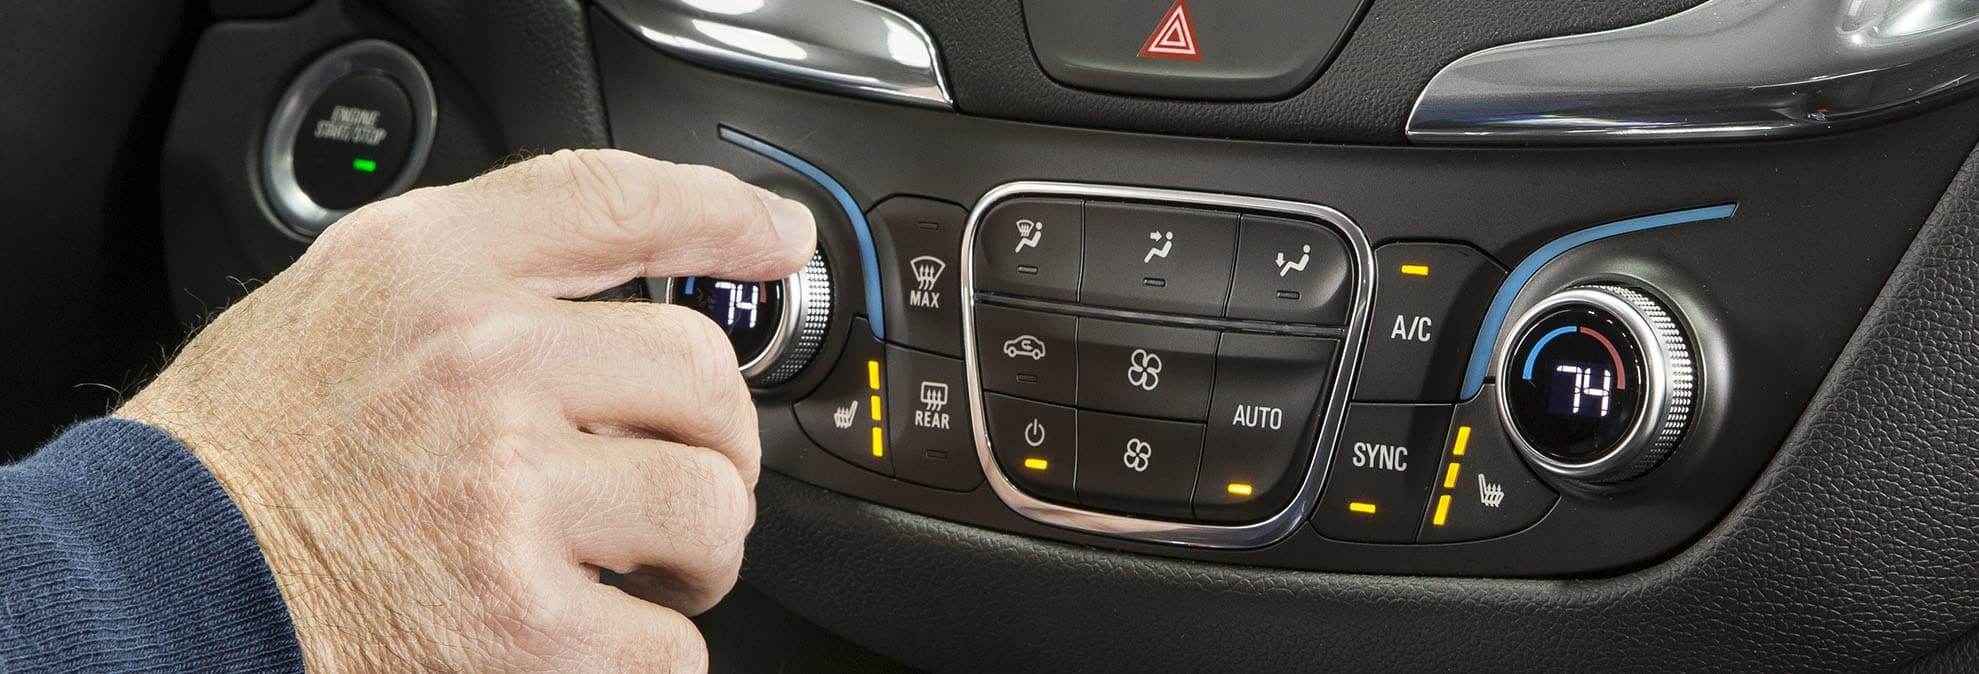 How to Get the Most Out of Your Car's Heater - Consumer Reports